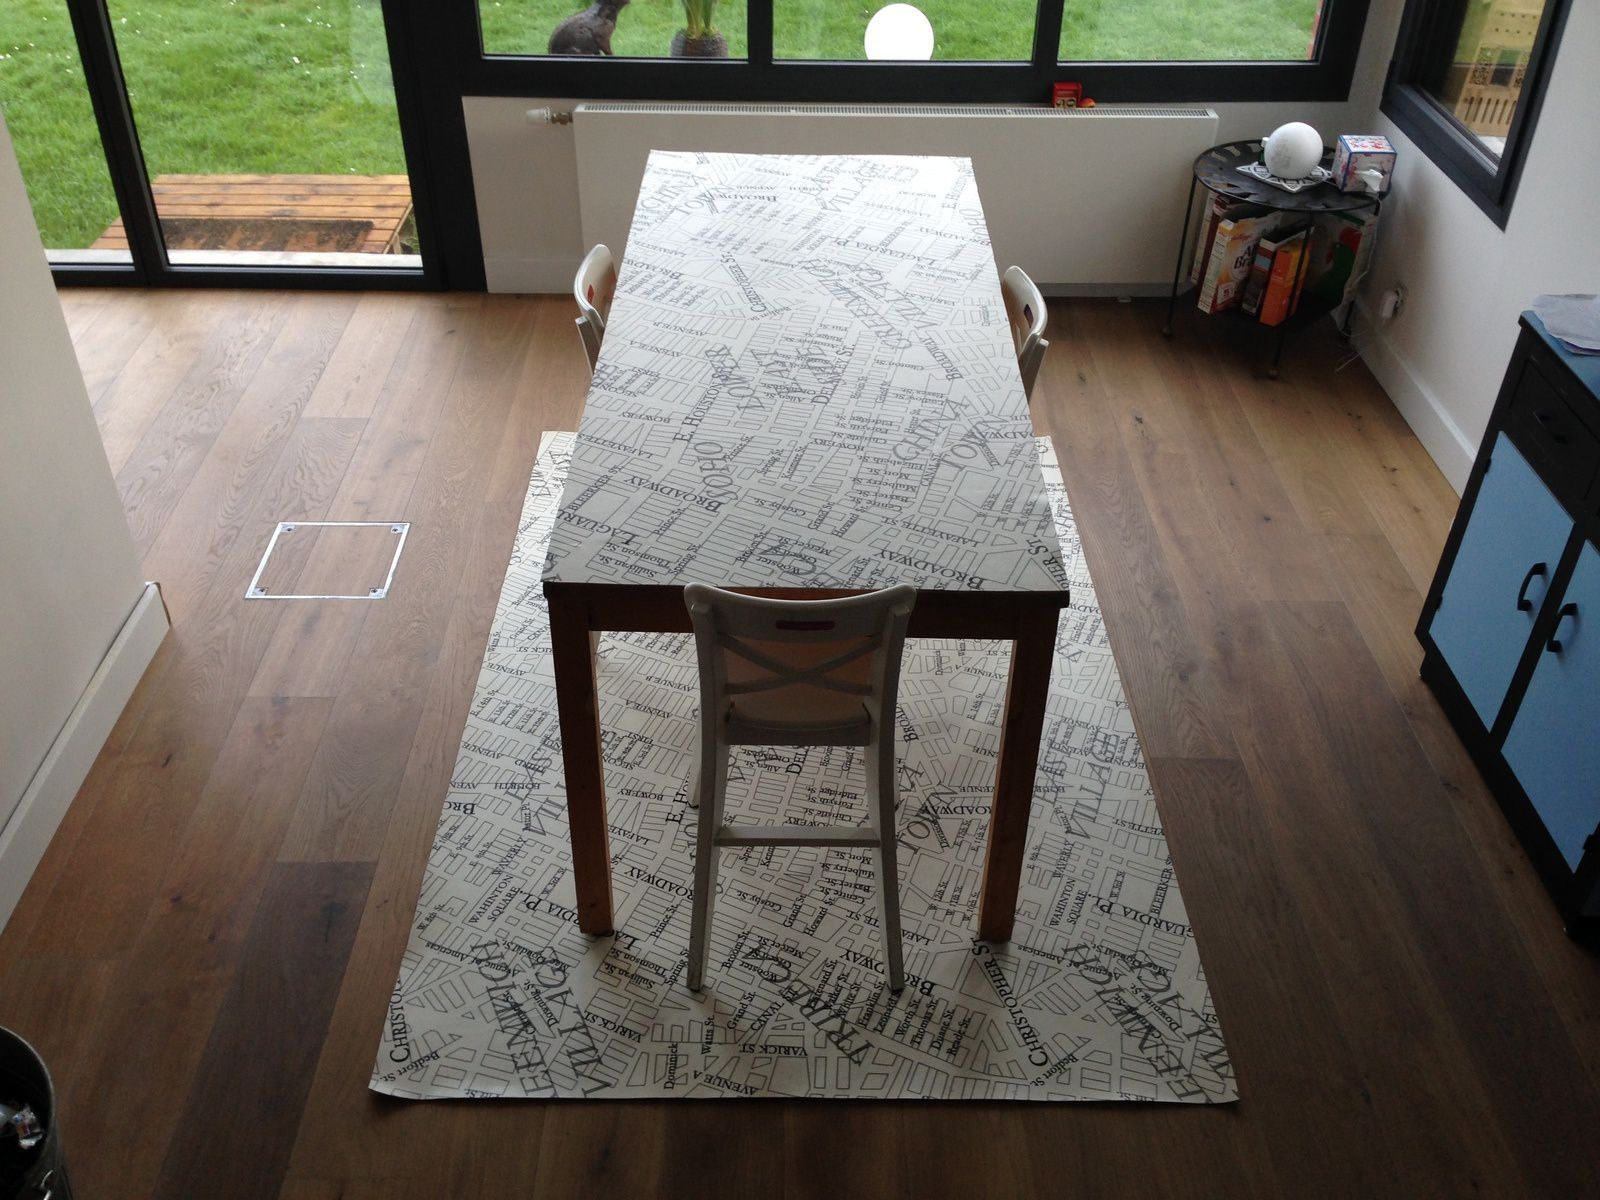 tapis de table great tapis pour table basse le fauteuil club ikea pour le salon avec un pour. Black Bedroom Furniture Sets. Home Design Ideas